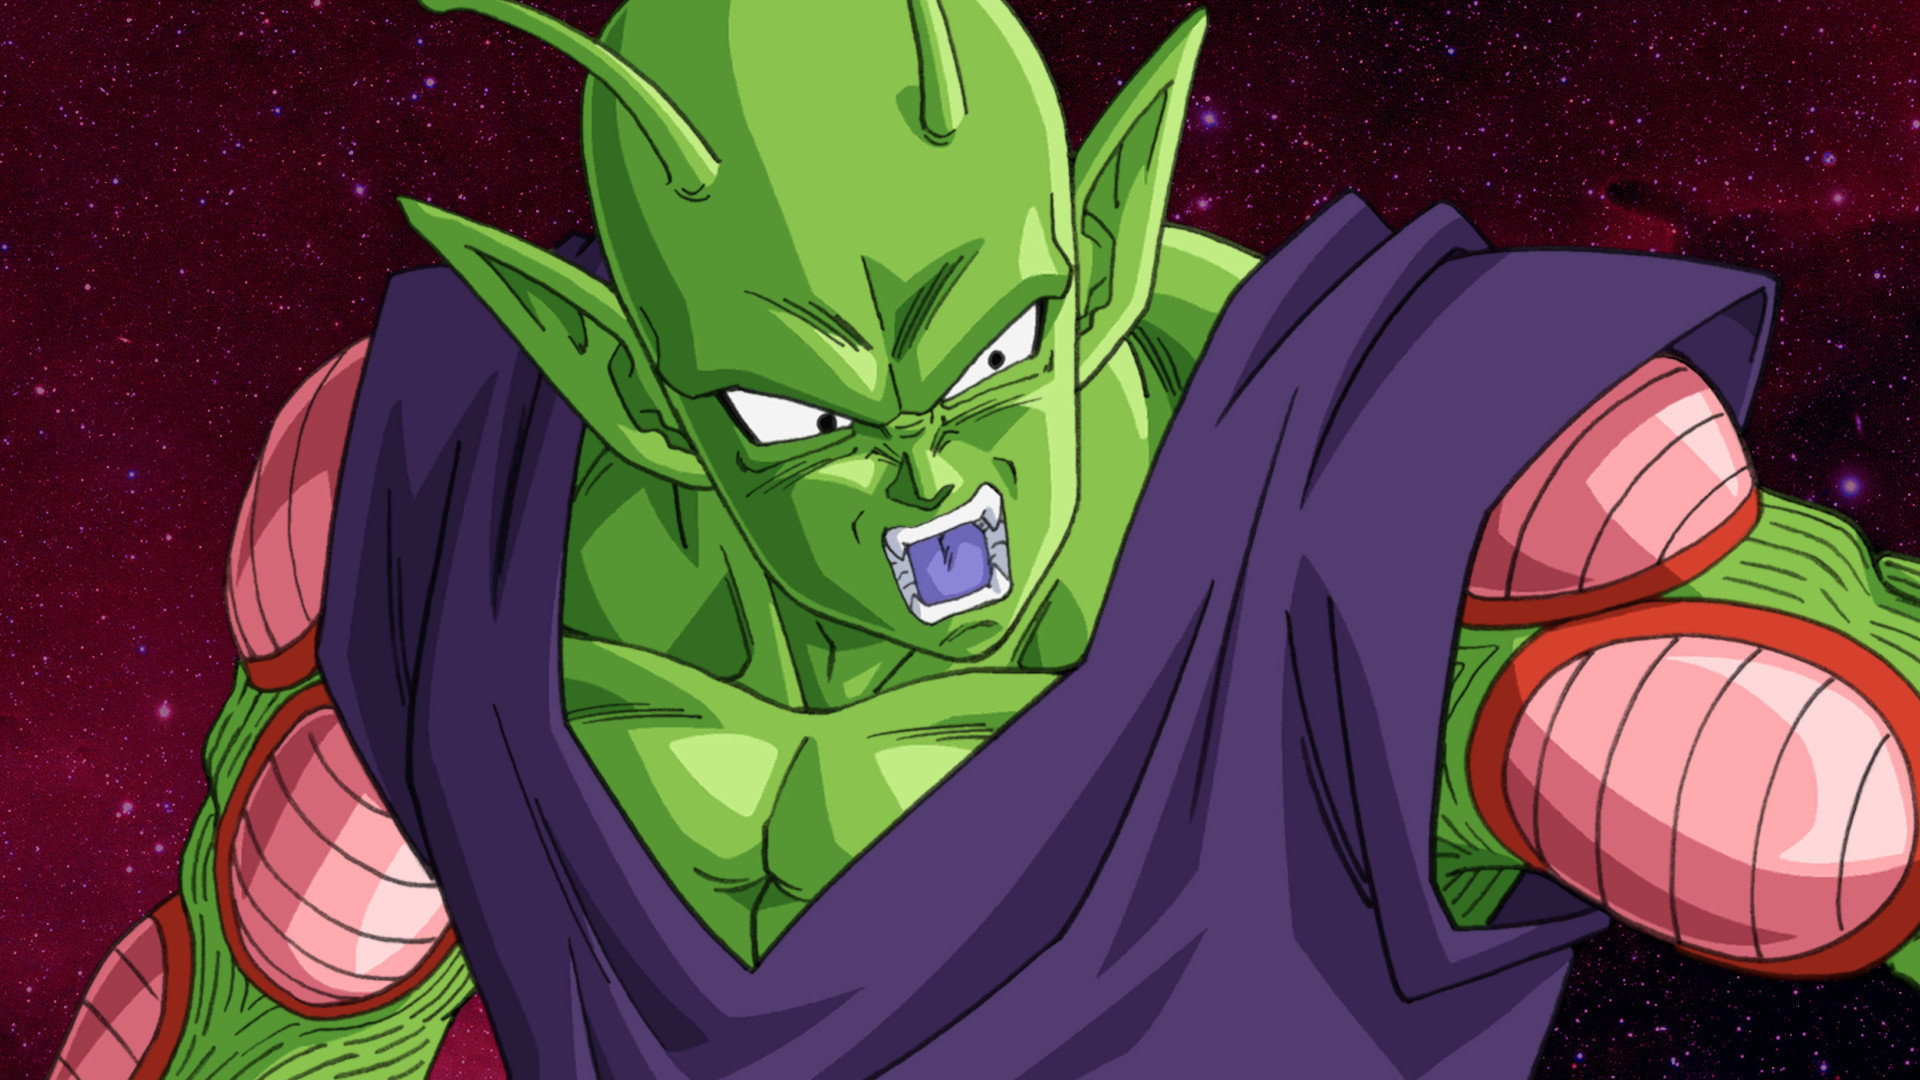 Awesome Dragon Ball Z: Resurrection Of F free wallpaper ID:391546 for 1080p PC